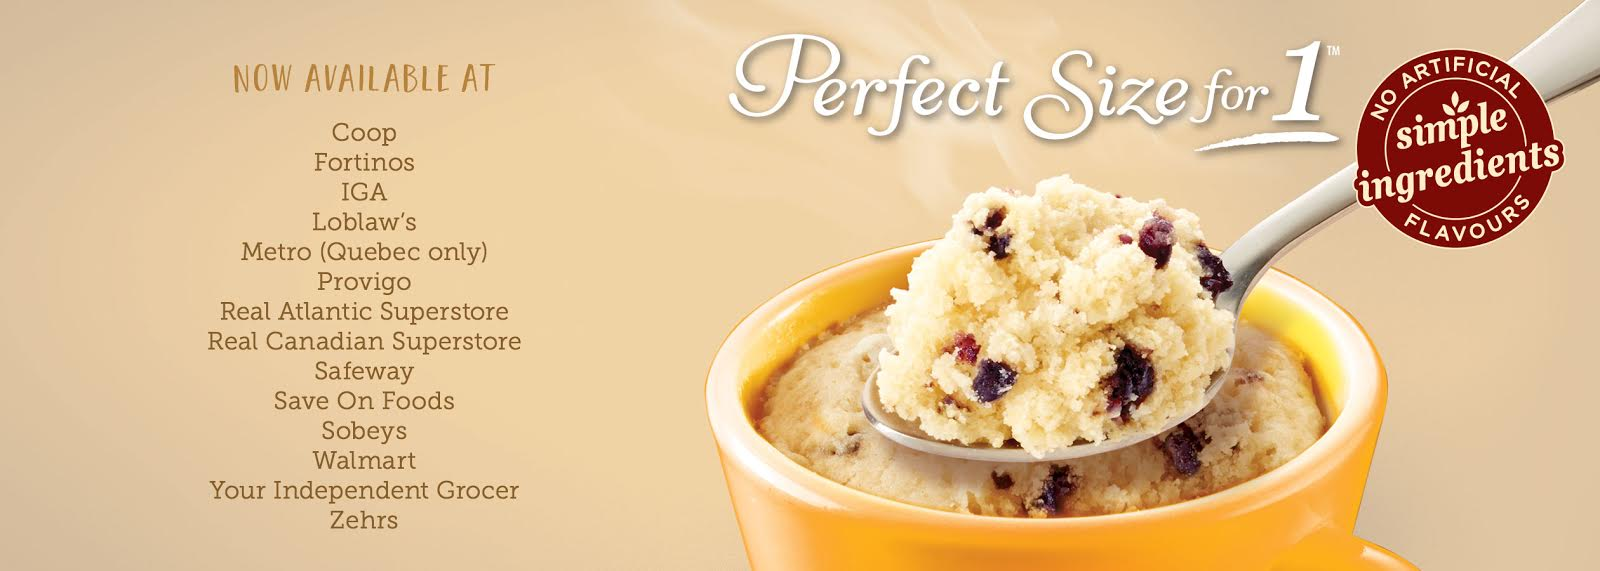 Duncan Hines for Perfect Size for 1 mug cake mixes are available across Canada